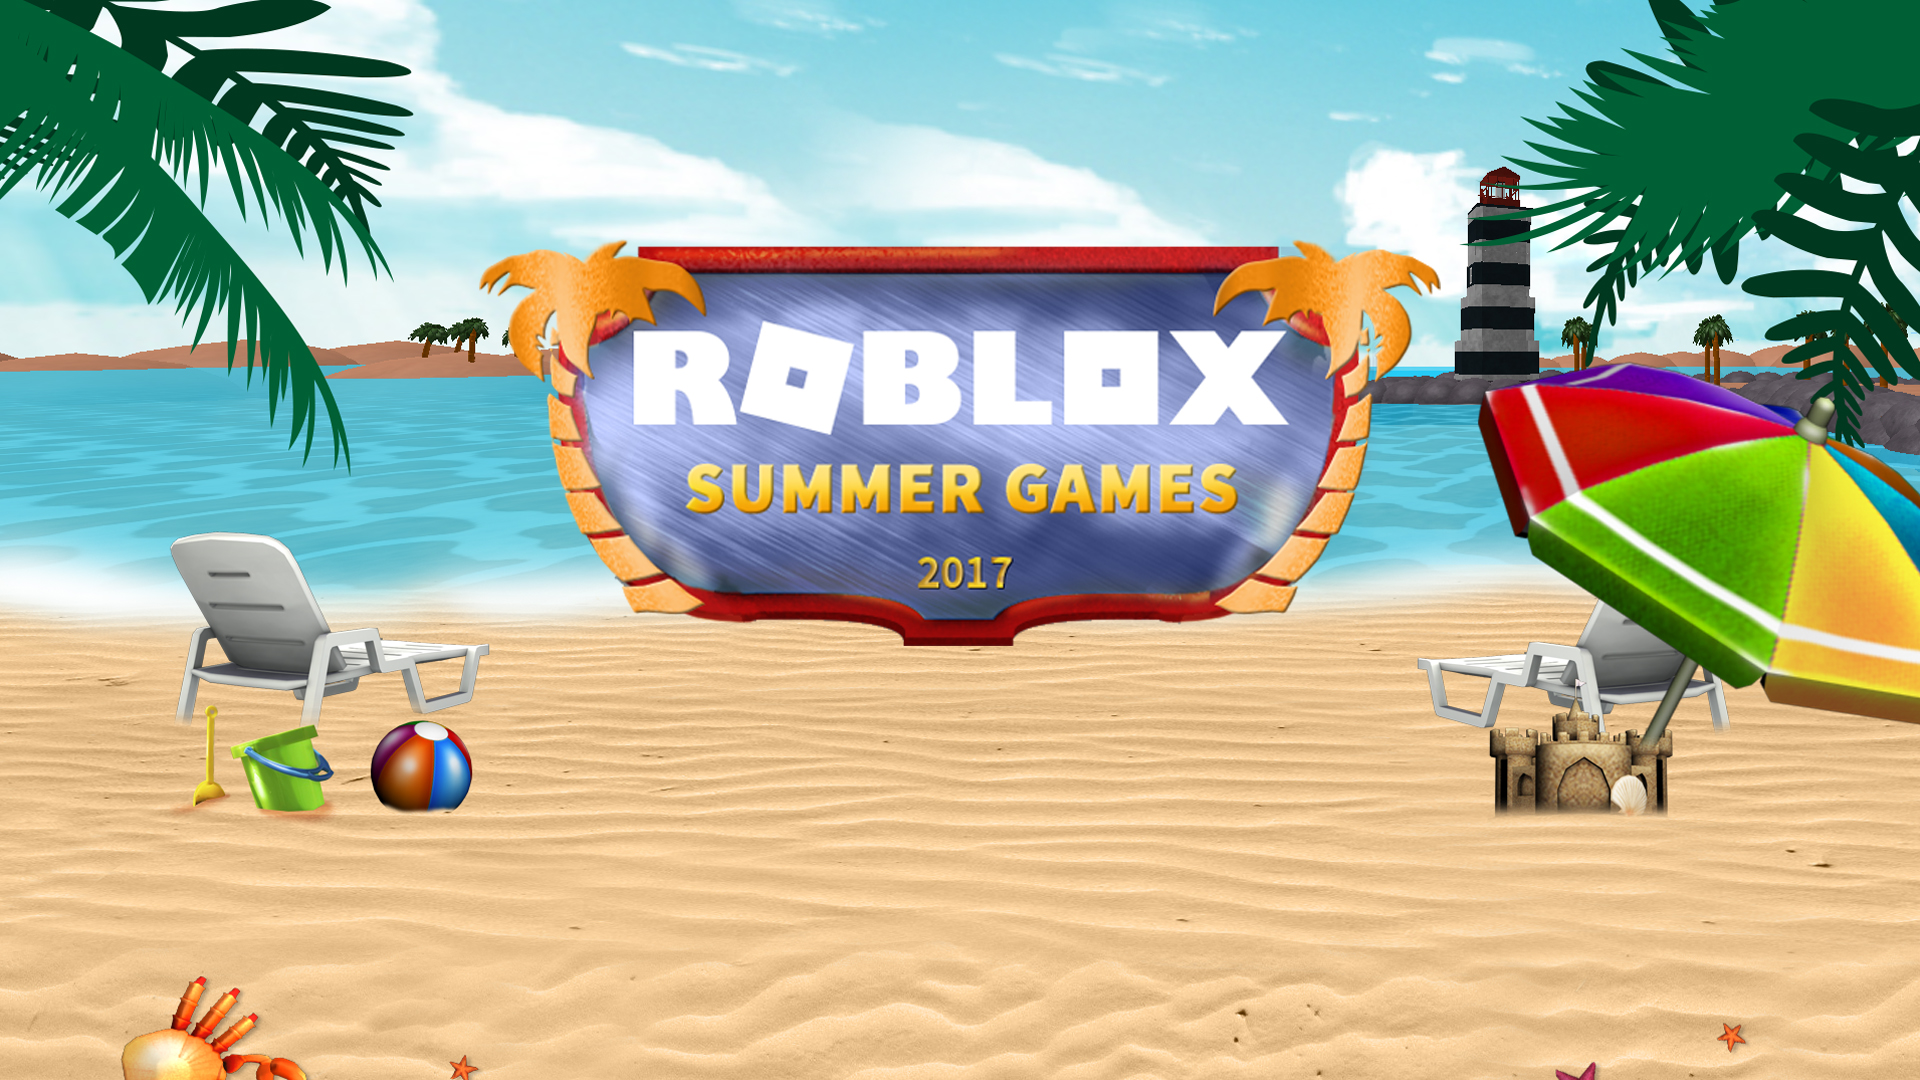 Hang out on the Beach for the Roblox Summer Games   Roblox Blog